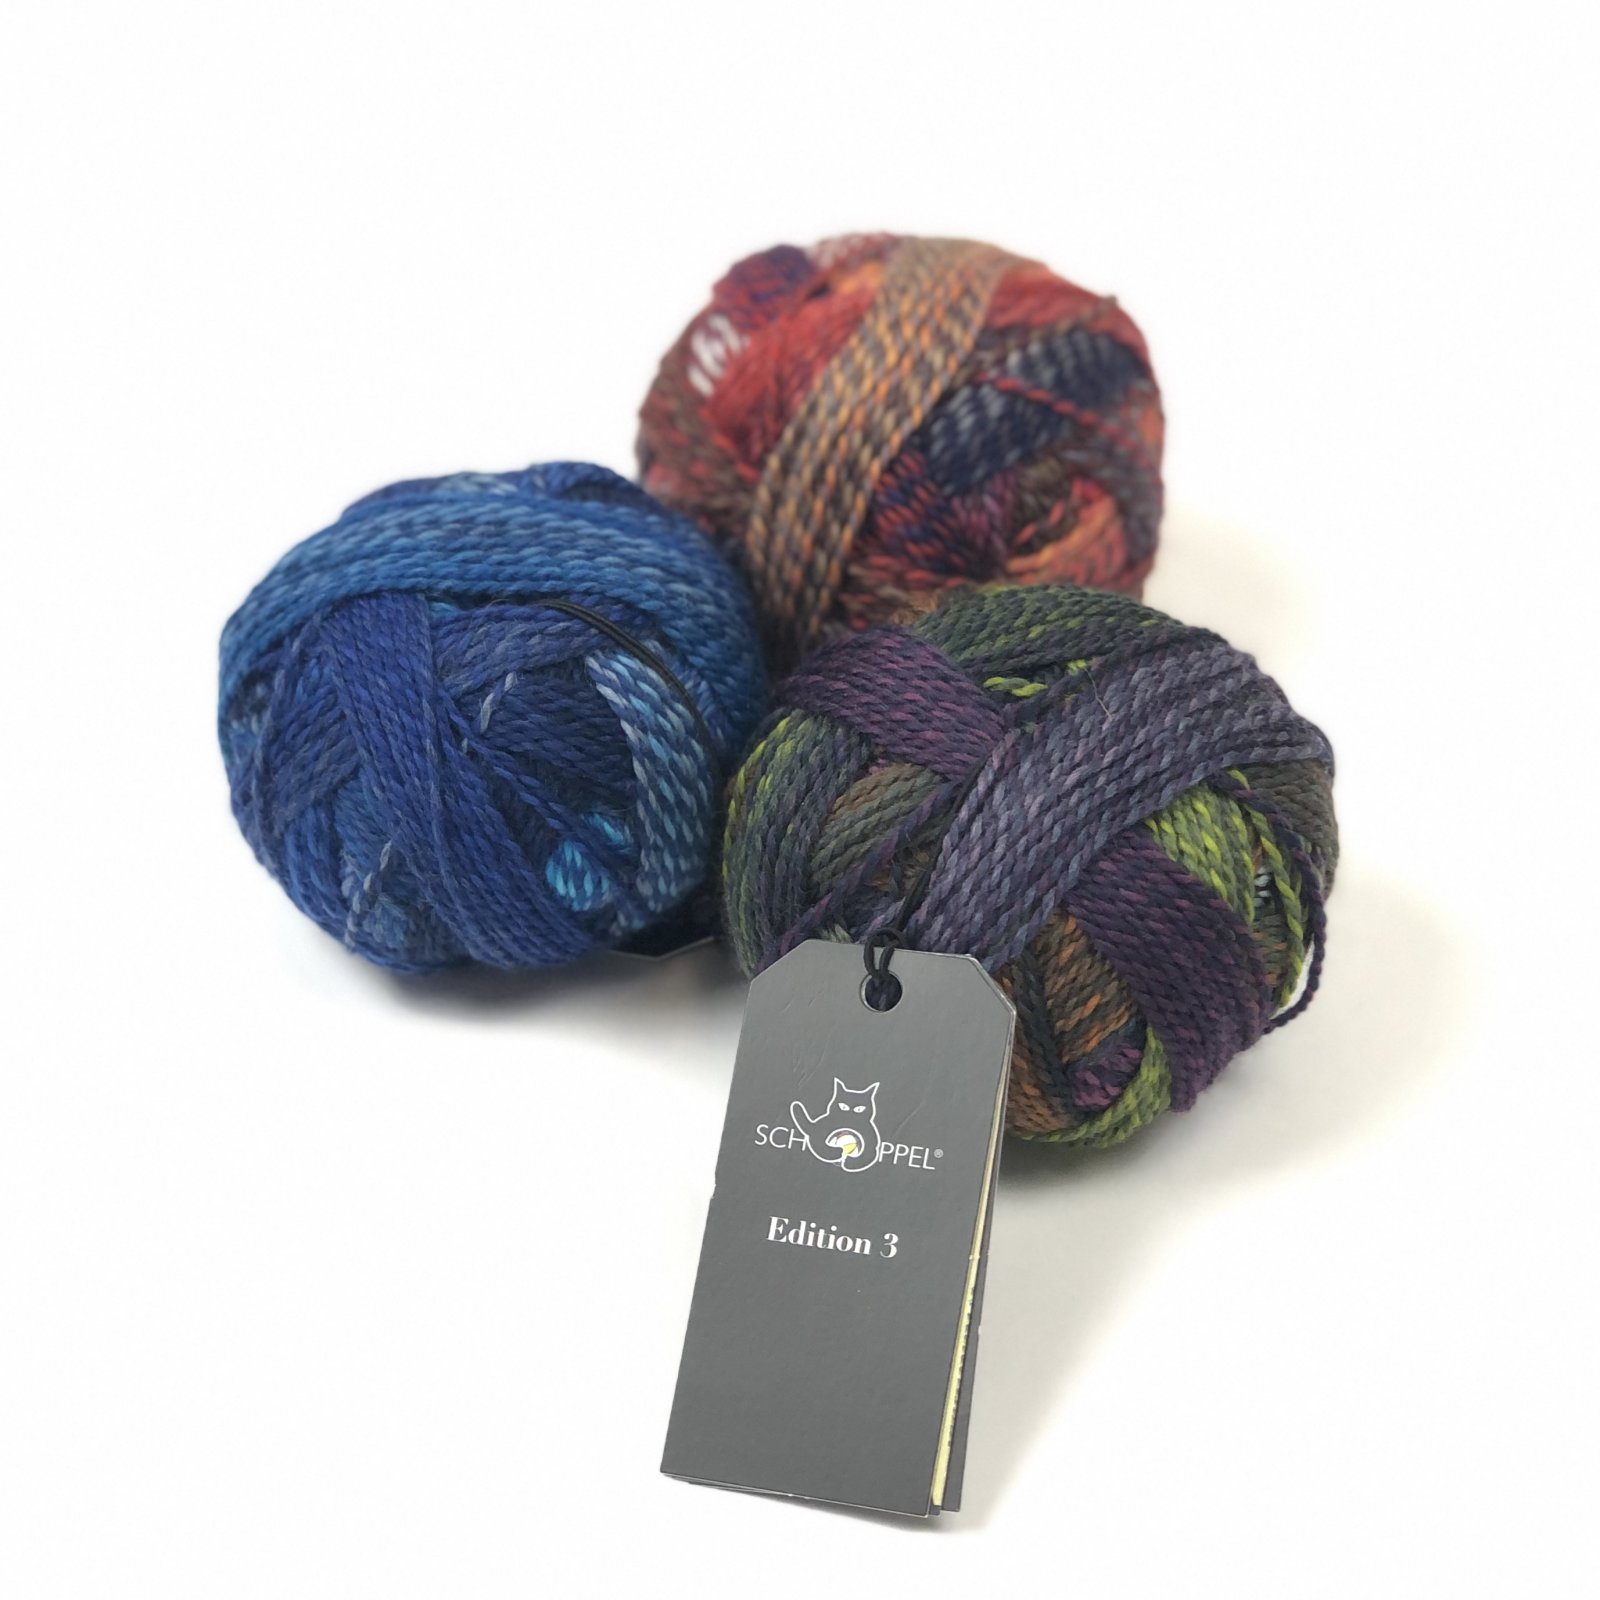 The Shift Cowl Kit designed by Andrea Mowry